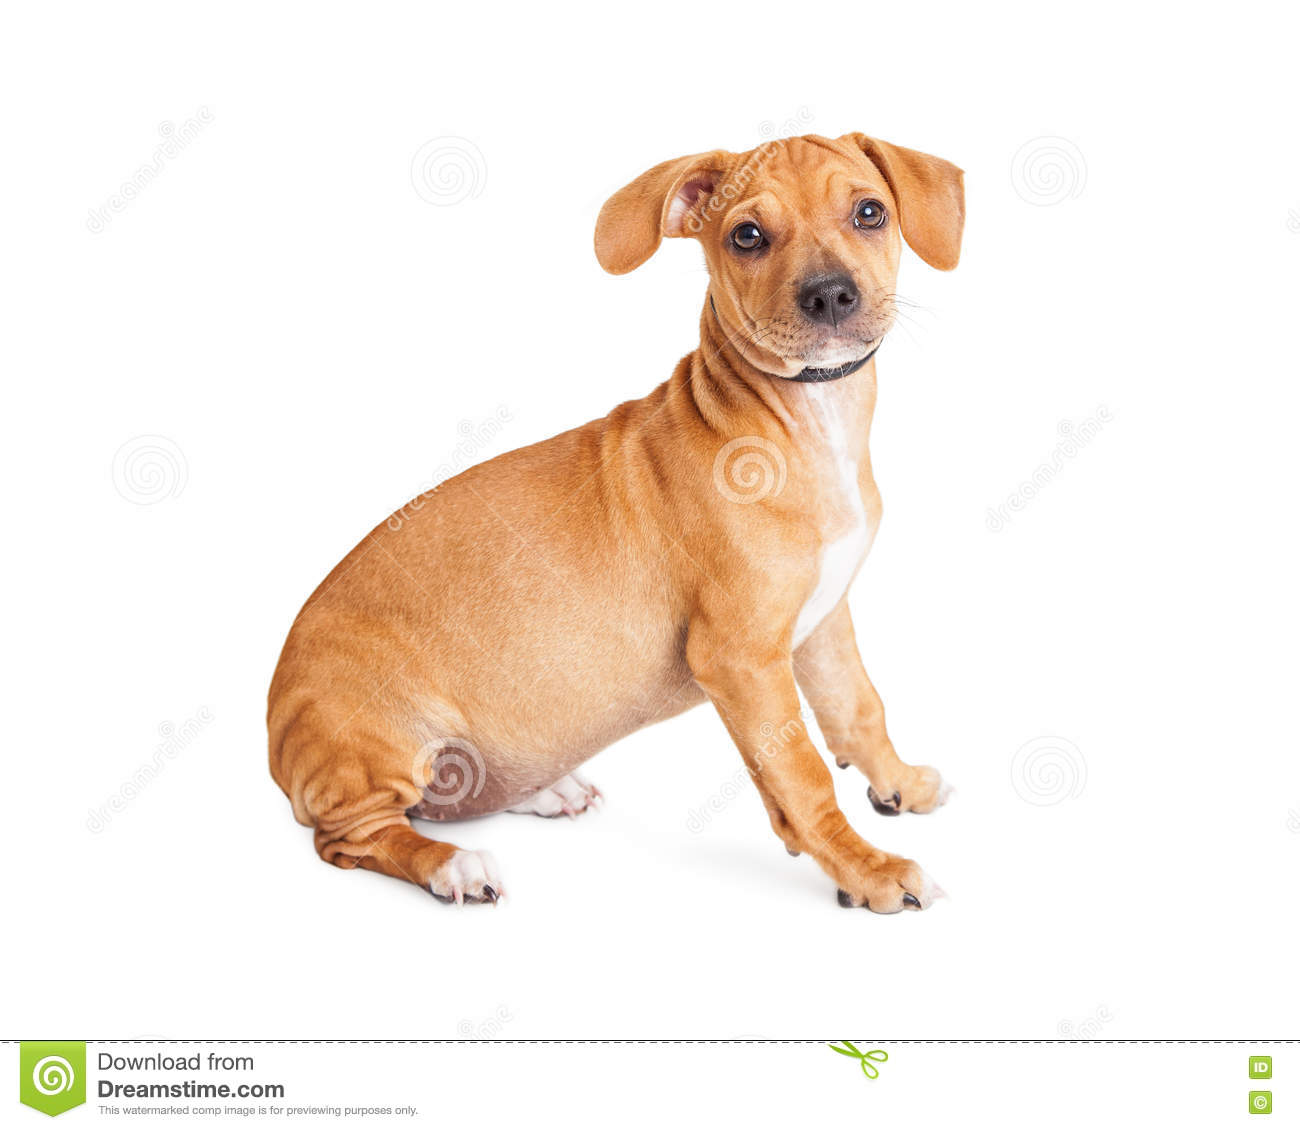 Pics photos dachshund chihuahua dog mix dogs pictures photos pics - Chihuahua Dachshund Dog Sitting To Side